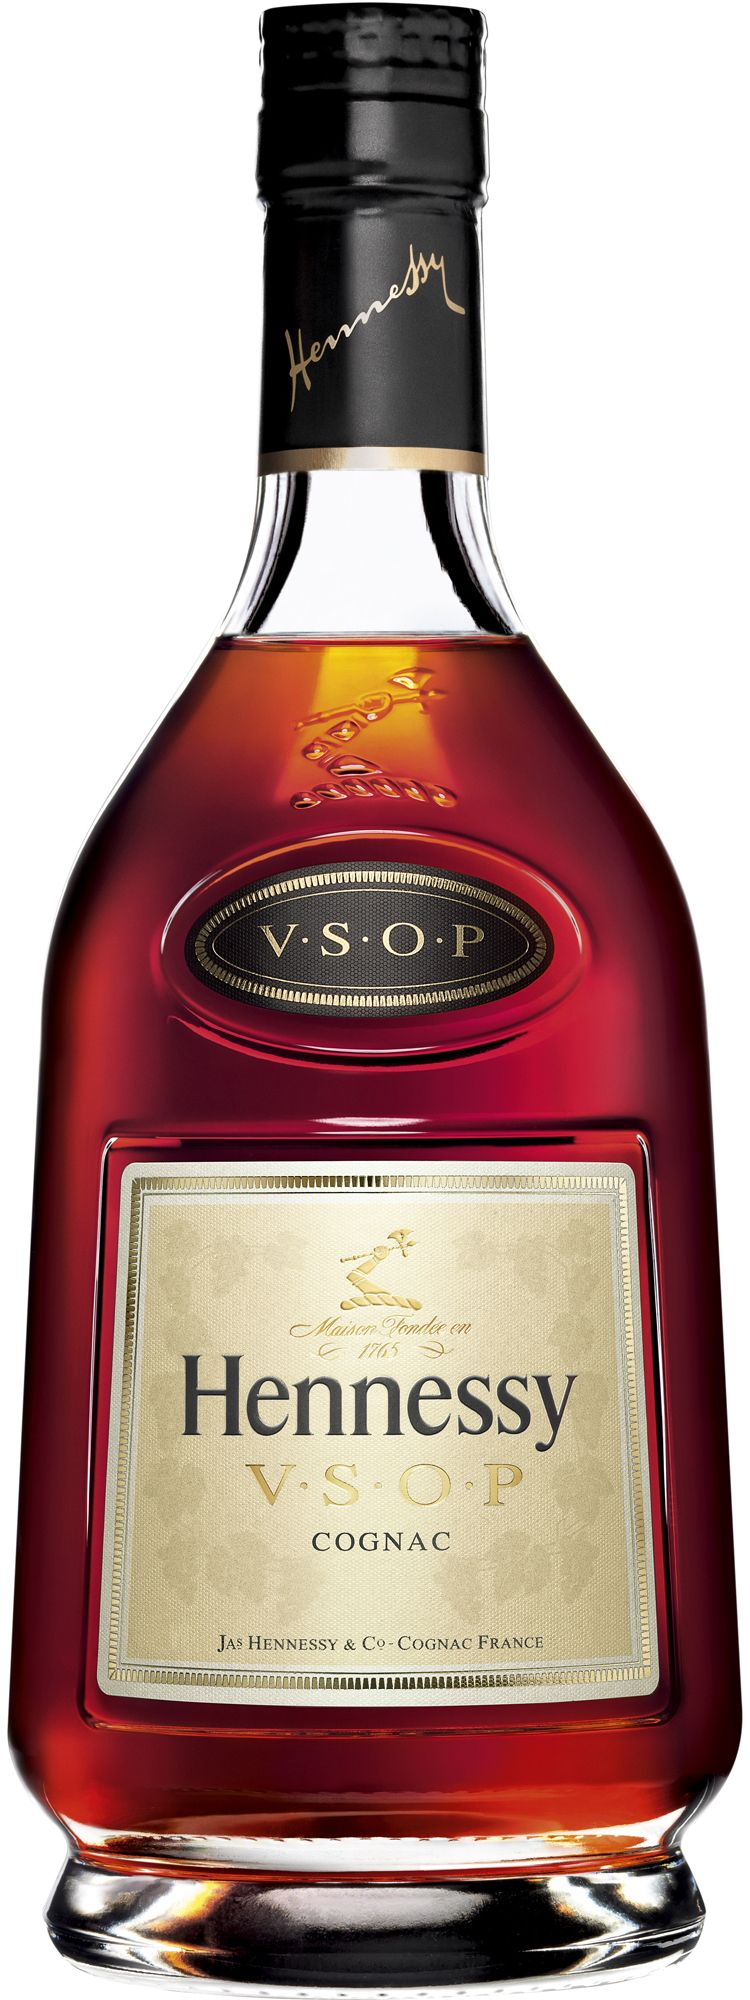 Hennessy Vsop Cognac Vodka Drinks Wine Online Liquor